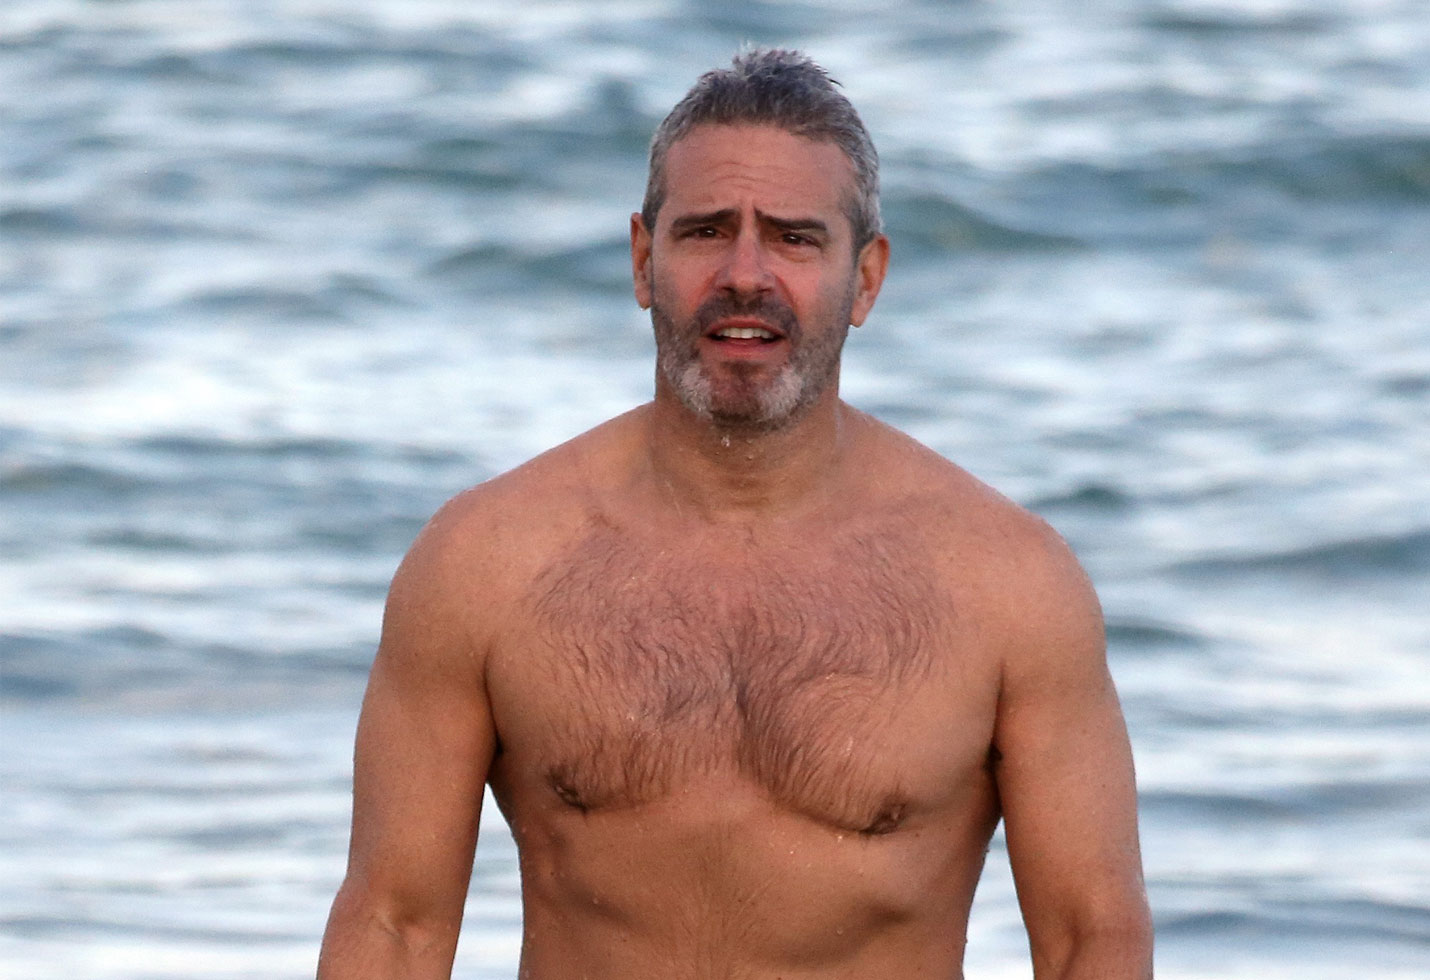 Andy Cohen shirtless on the beach with his son, Benjamin in Miami